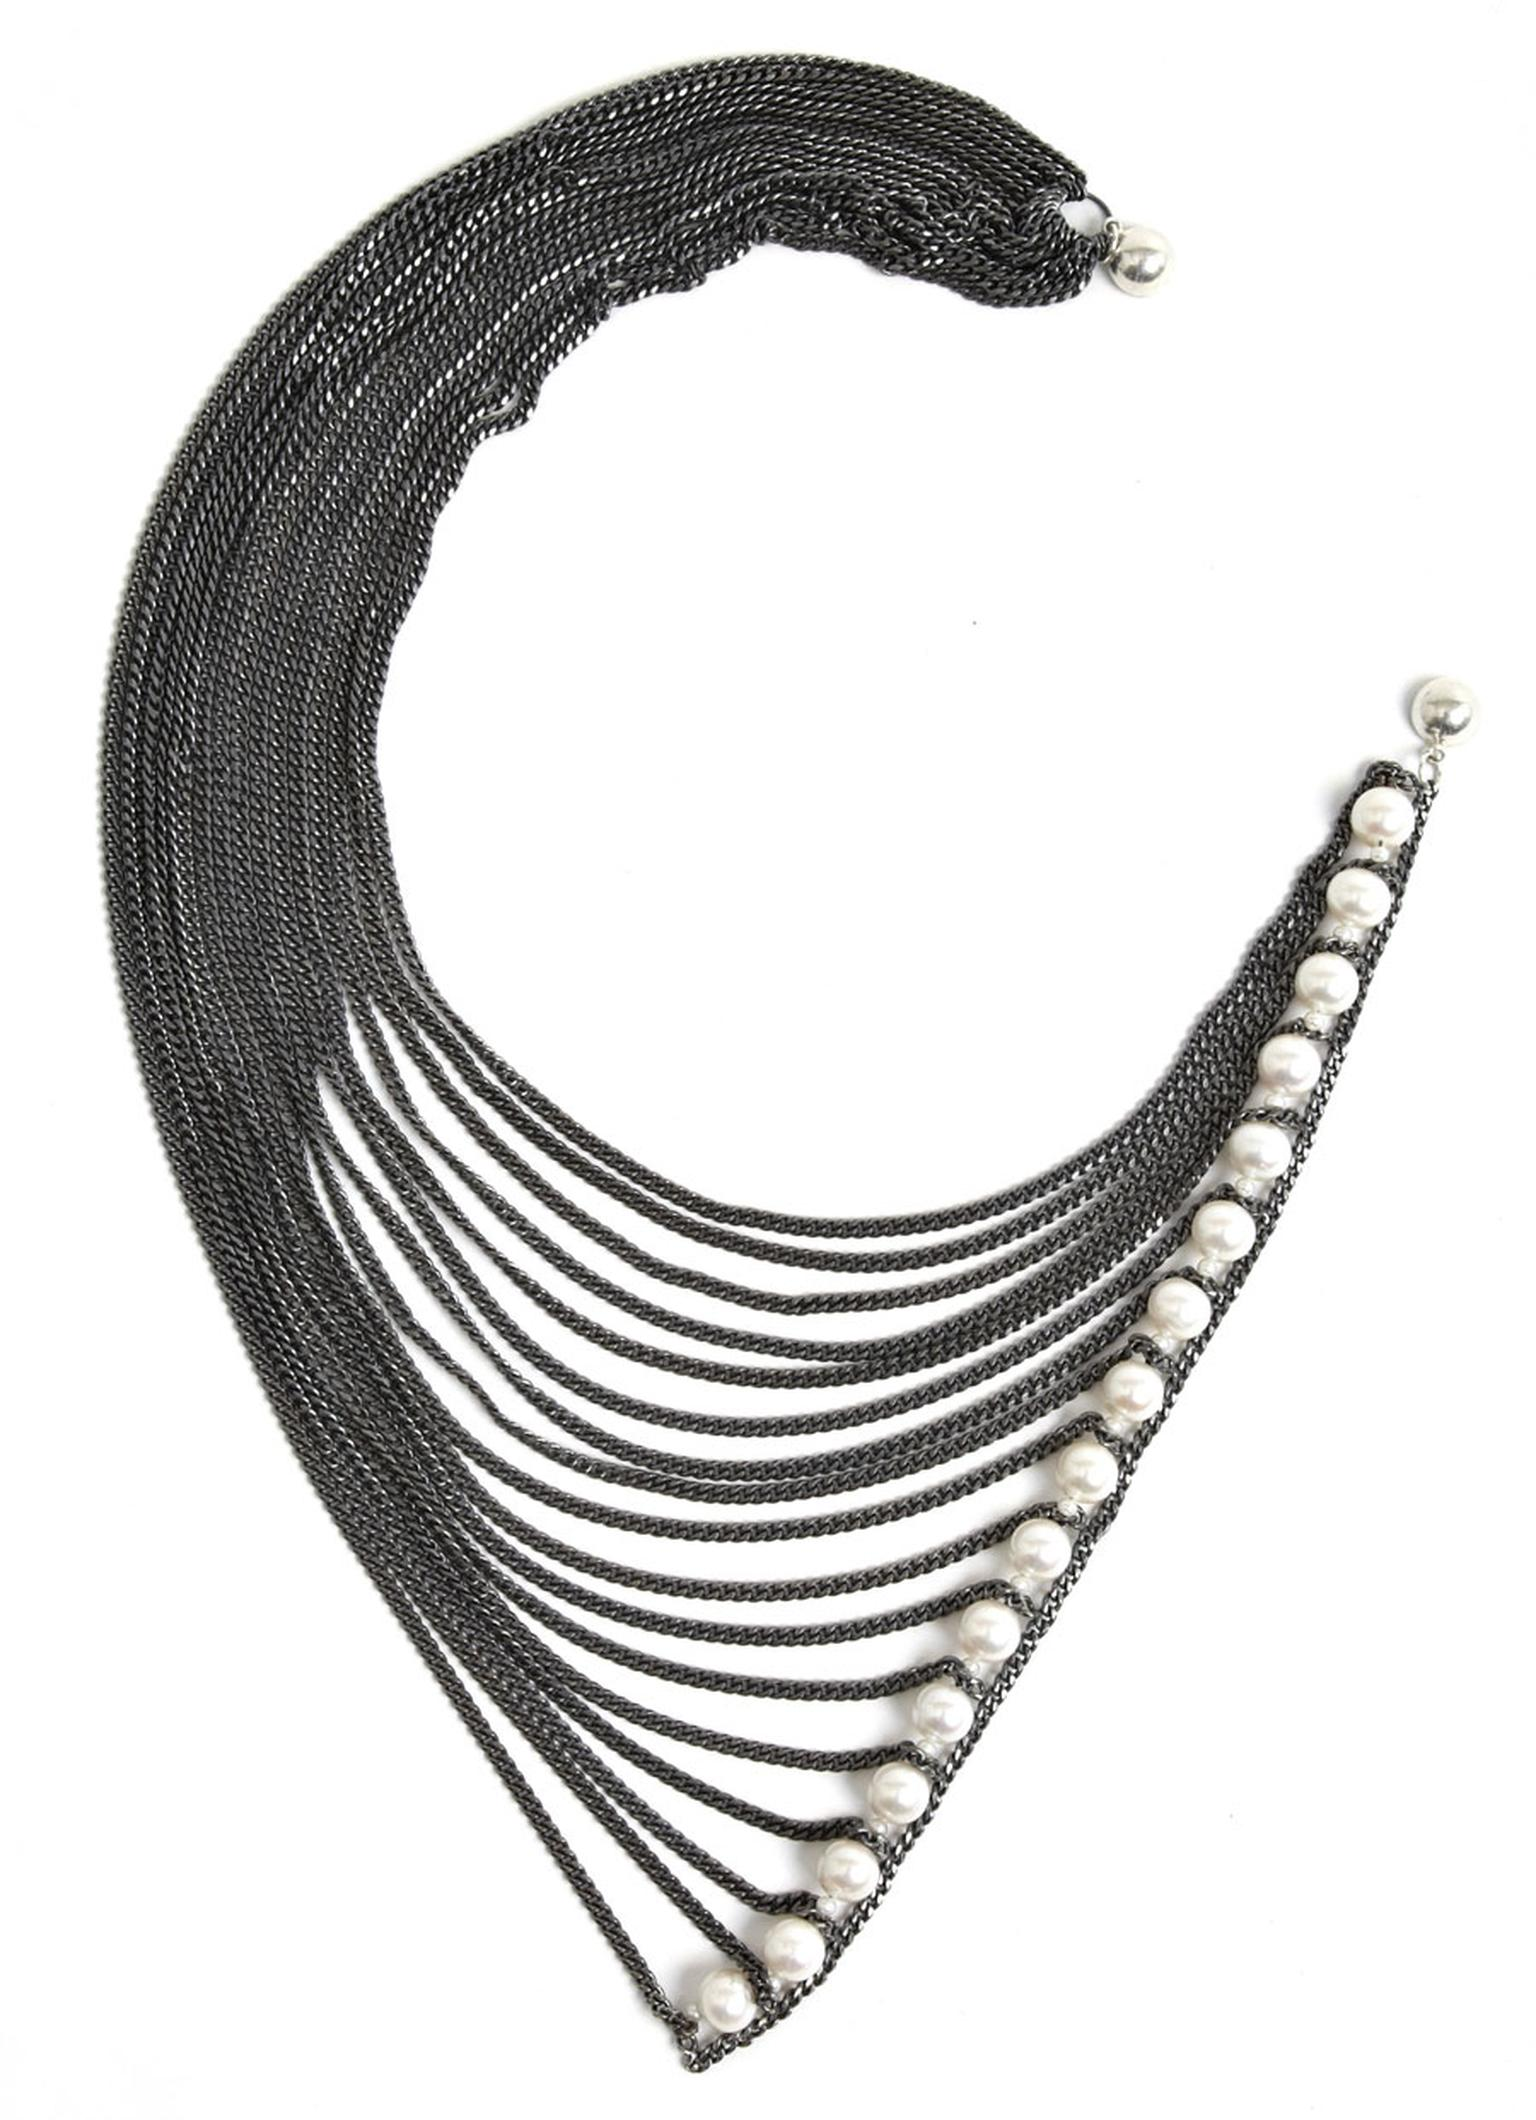 Melanie Georgacopoulos Necklace